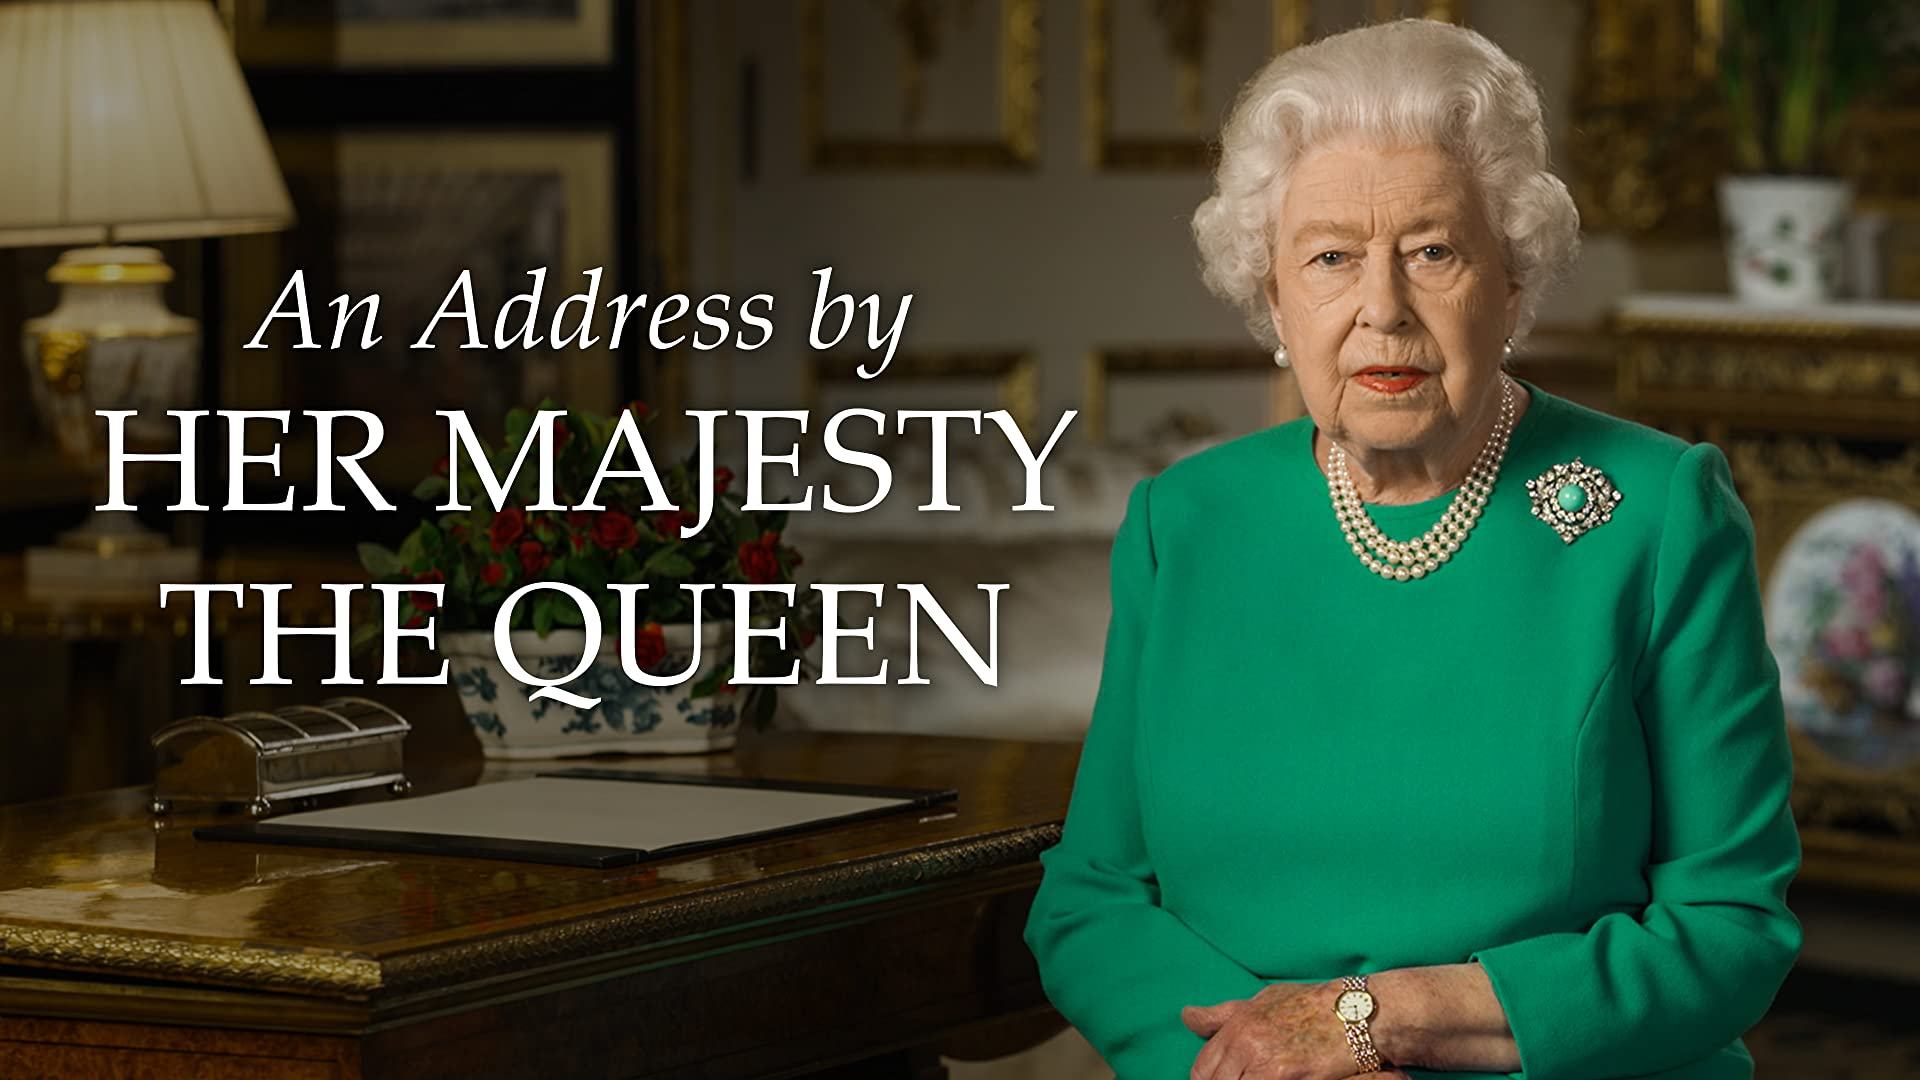 An Address by Her Majesty The Queen